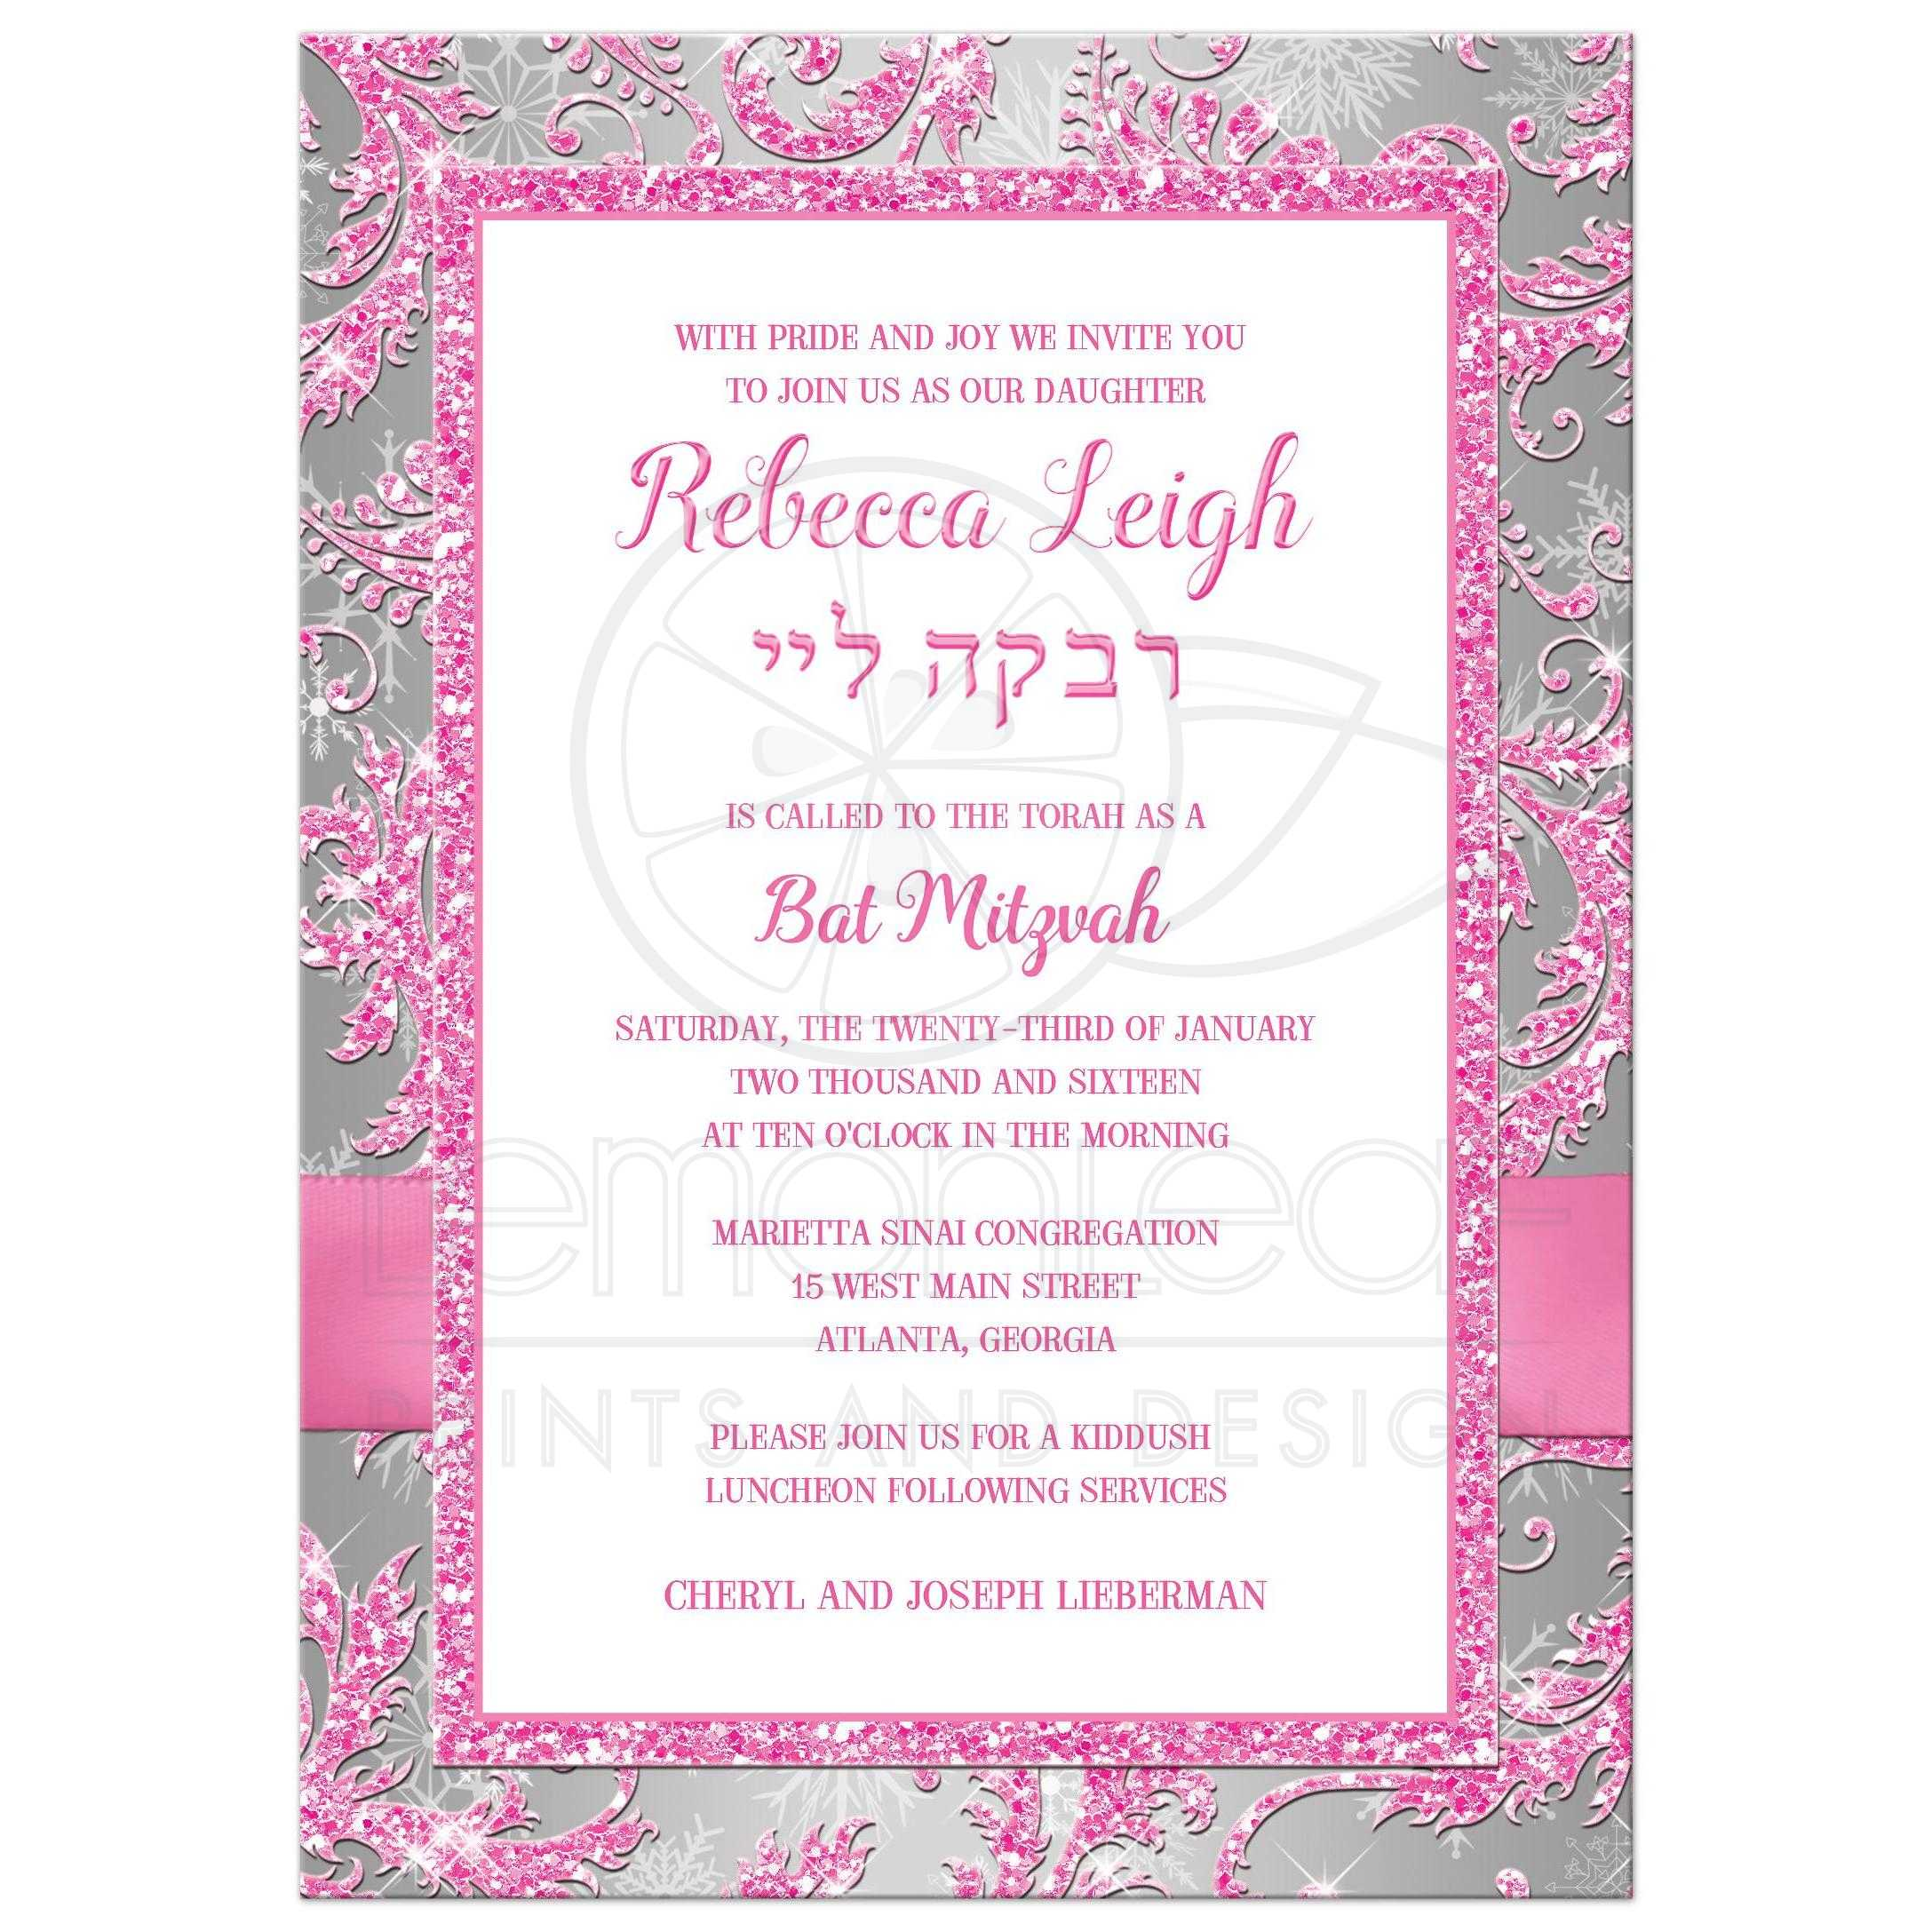 Communion Invitations Wording for beautiful invitations design